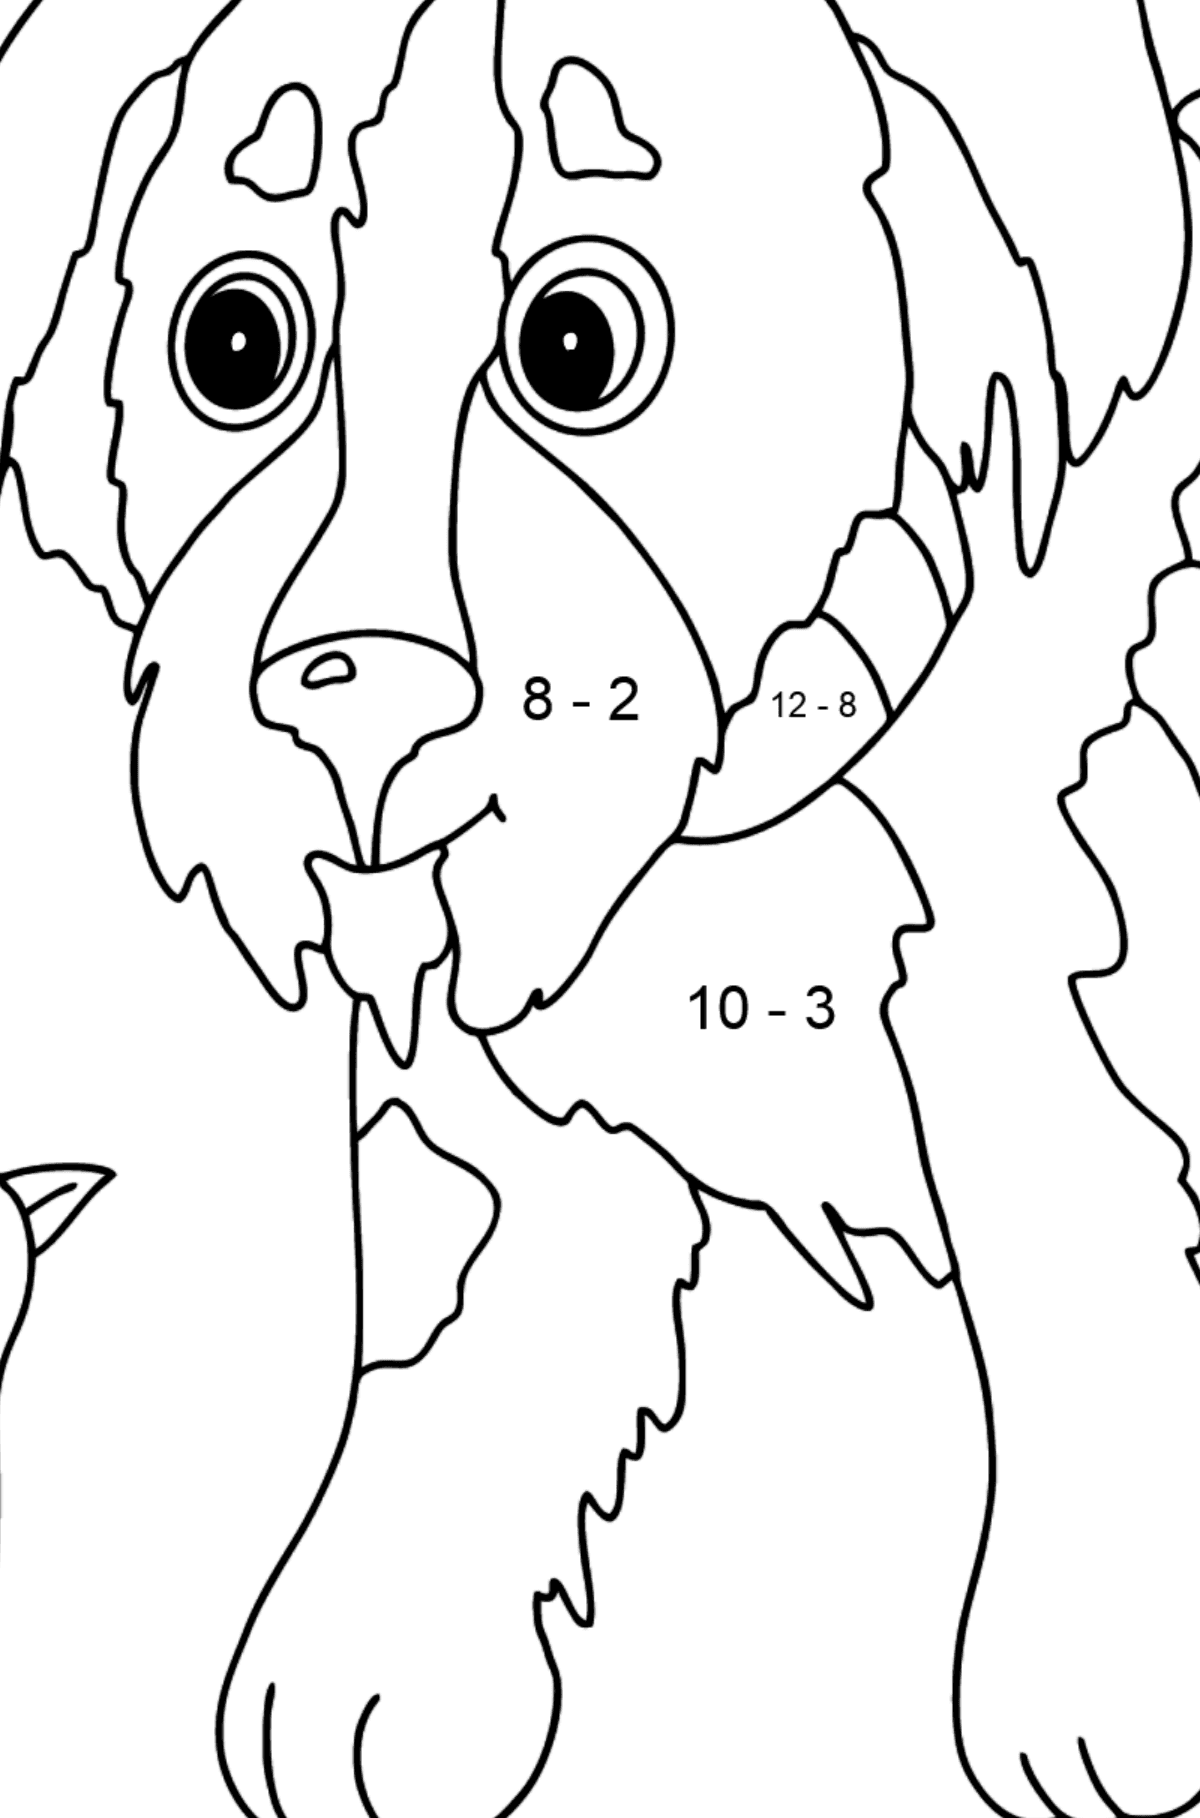 Coloring Page - A Dog is Talking to a Bird - Math Coloring - Subtraction for Kids